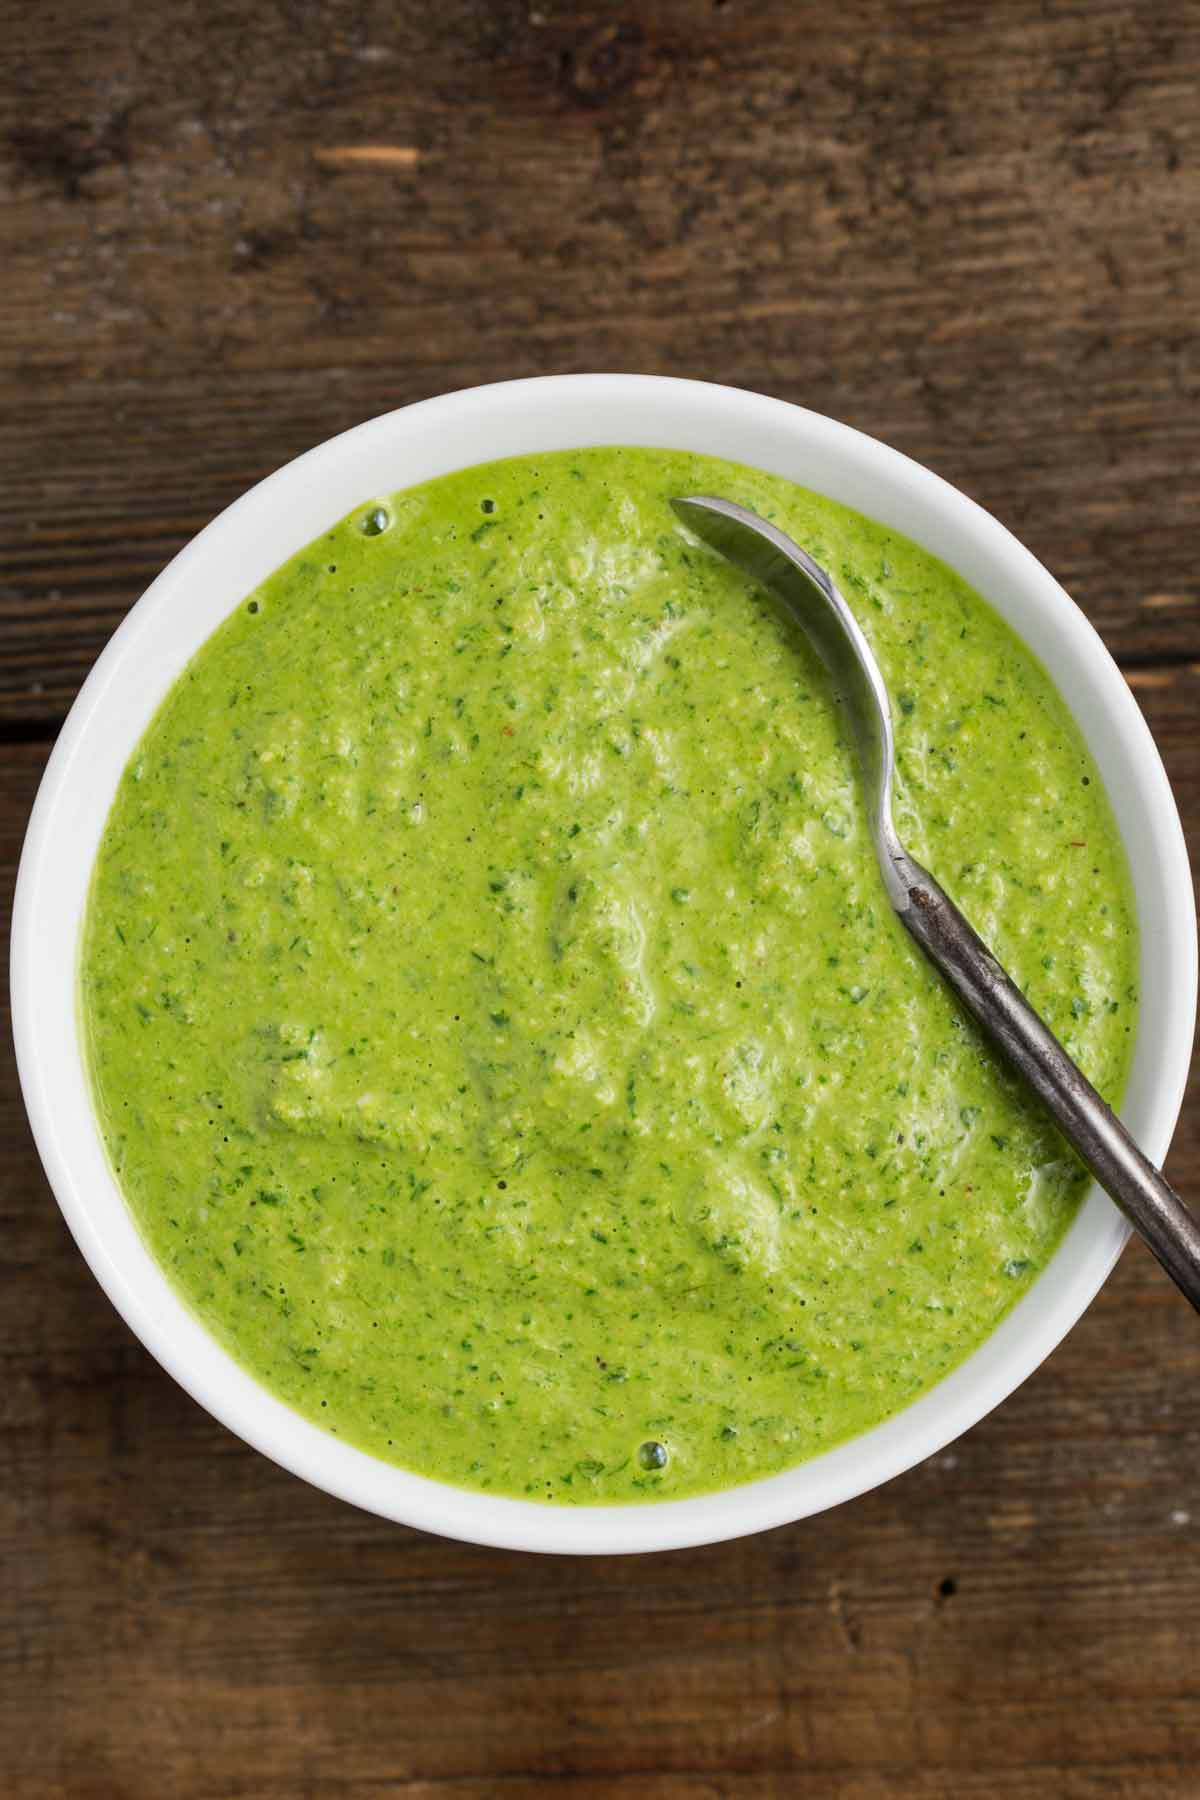 5-Minute Lemony Green Pesto Sauce | via veggiechick.com #vegan #oilfree